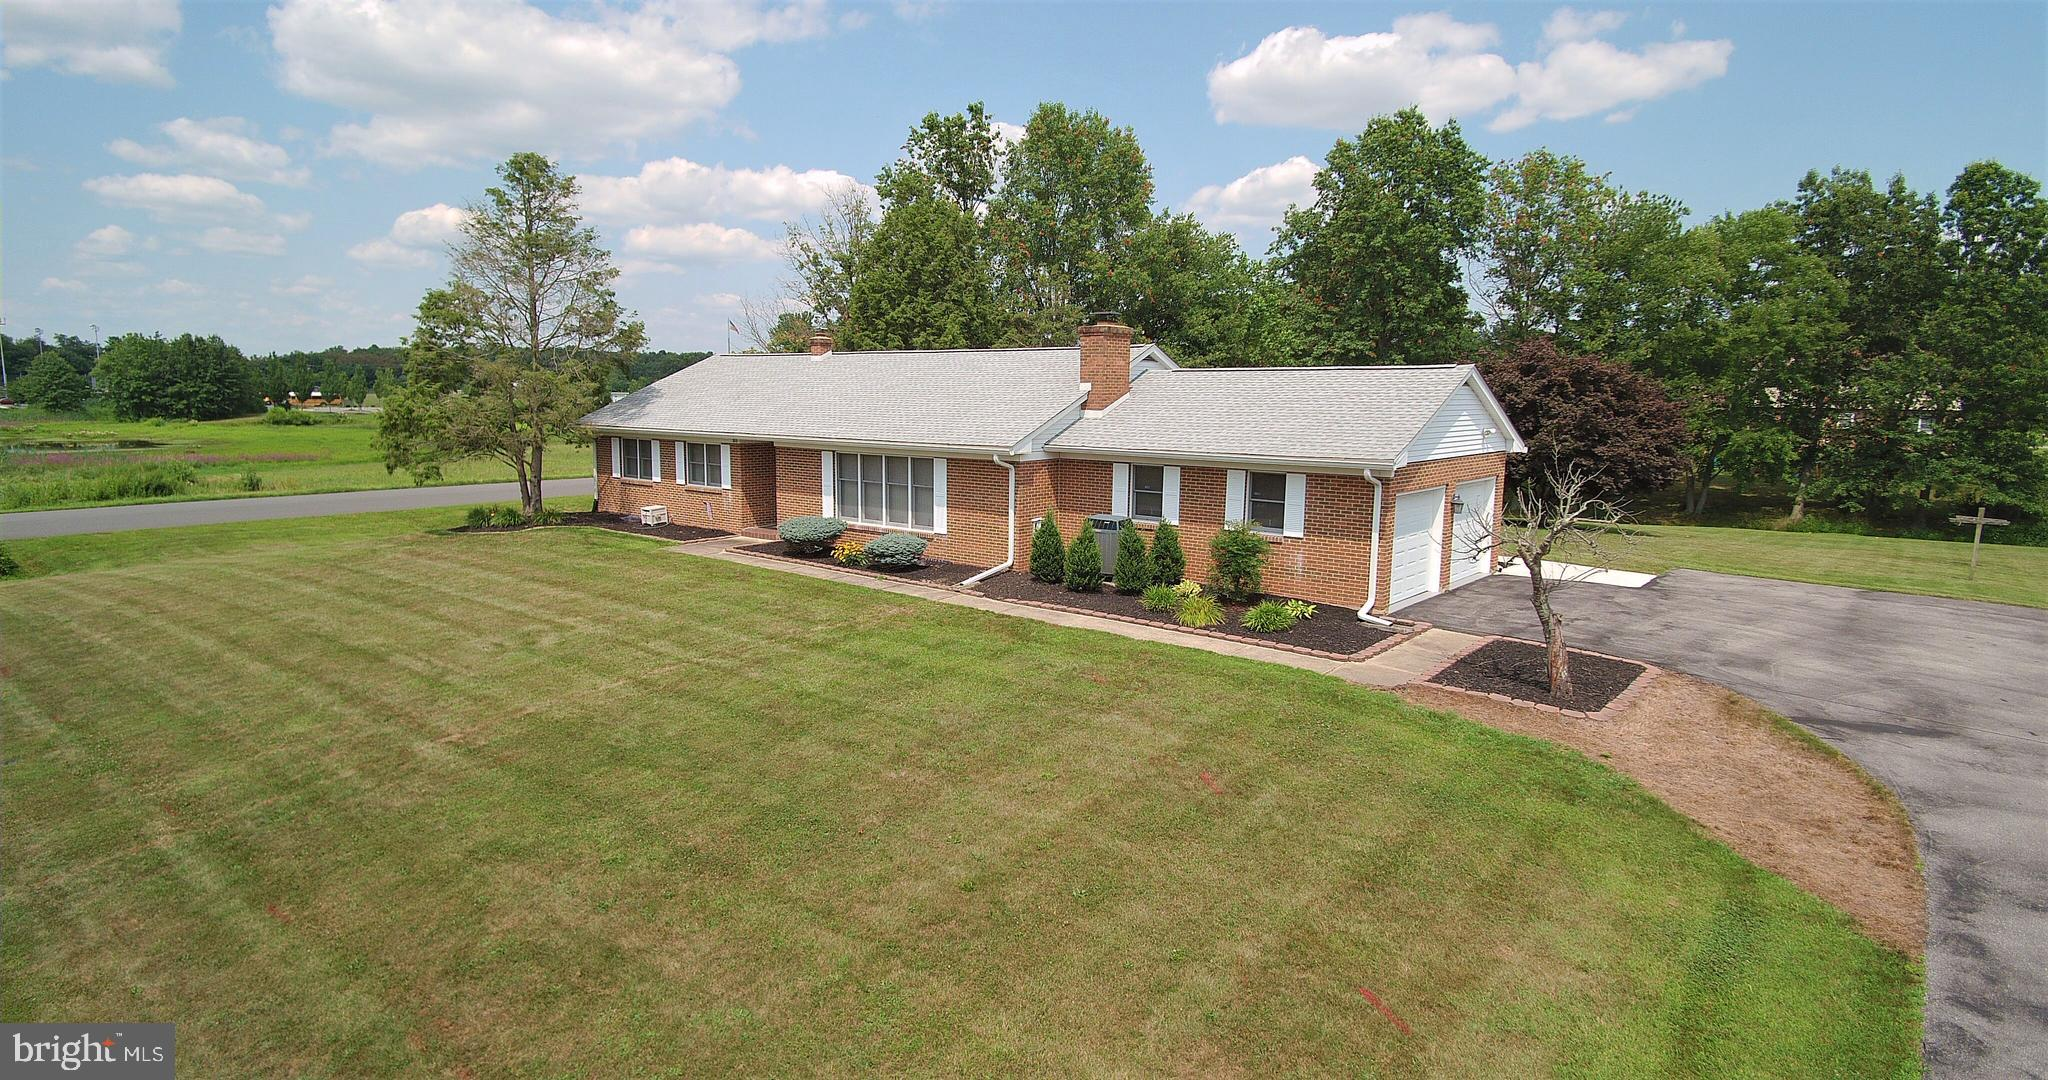 Rare all brick rancher in Caravel Farms!  This lovely 3 BR 2.5 bath R.C. Peoples built home has been